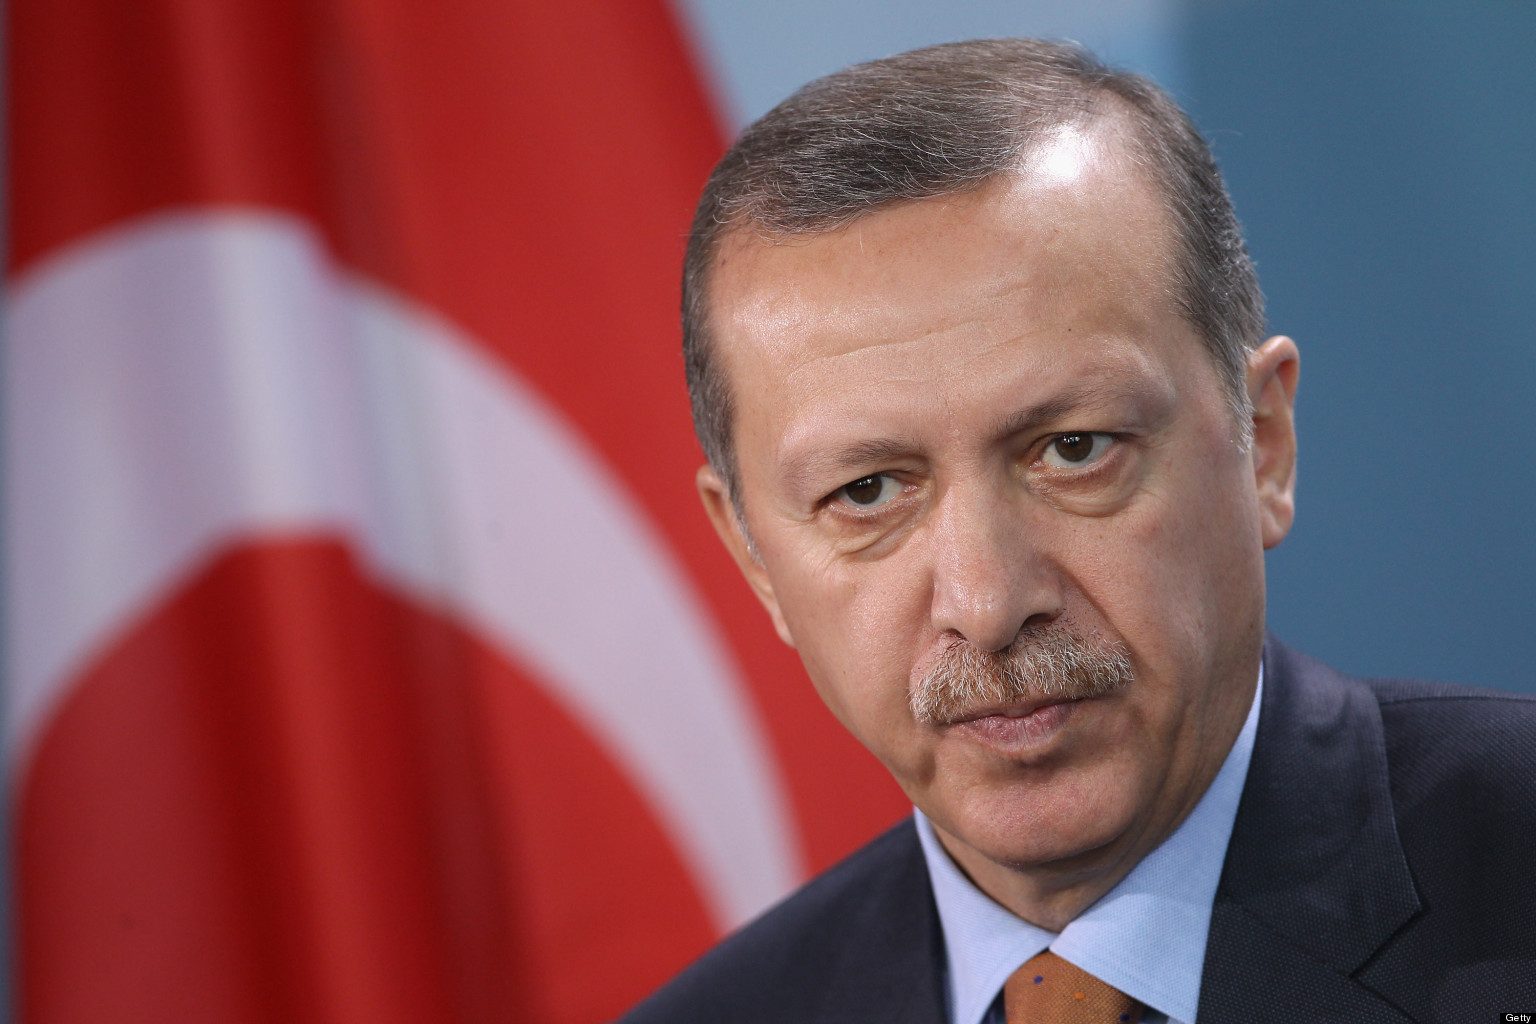 Erdogan: 'We will continue the research – Barbaros will not leave Cyprus'